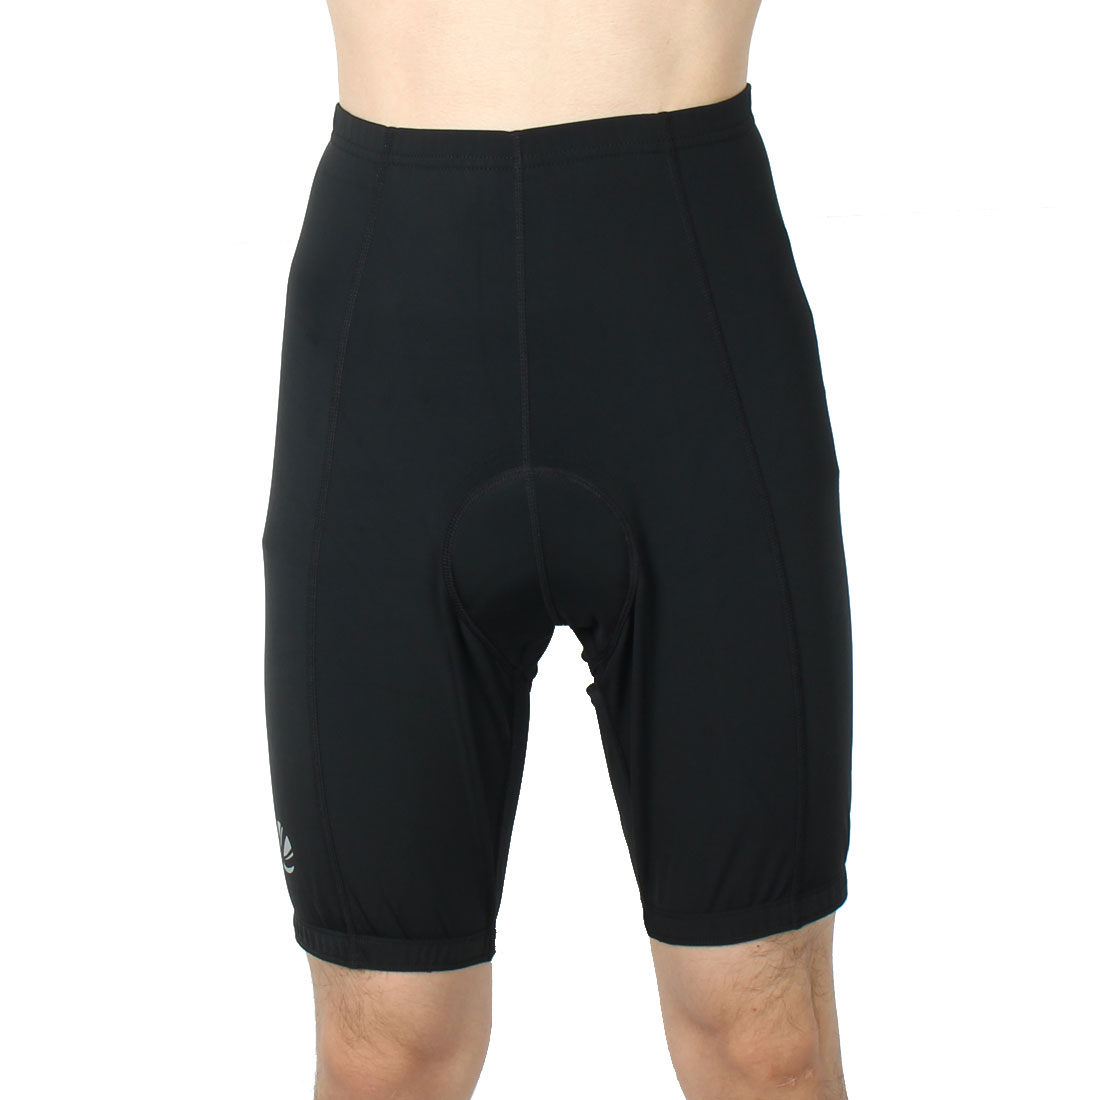 Men Polyester Outdoor Riding Bicycle Biking Breathable Underpants Half Pants Cycling Shorts Black XL